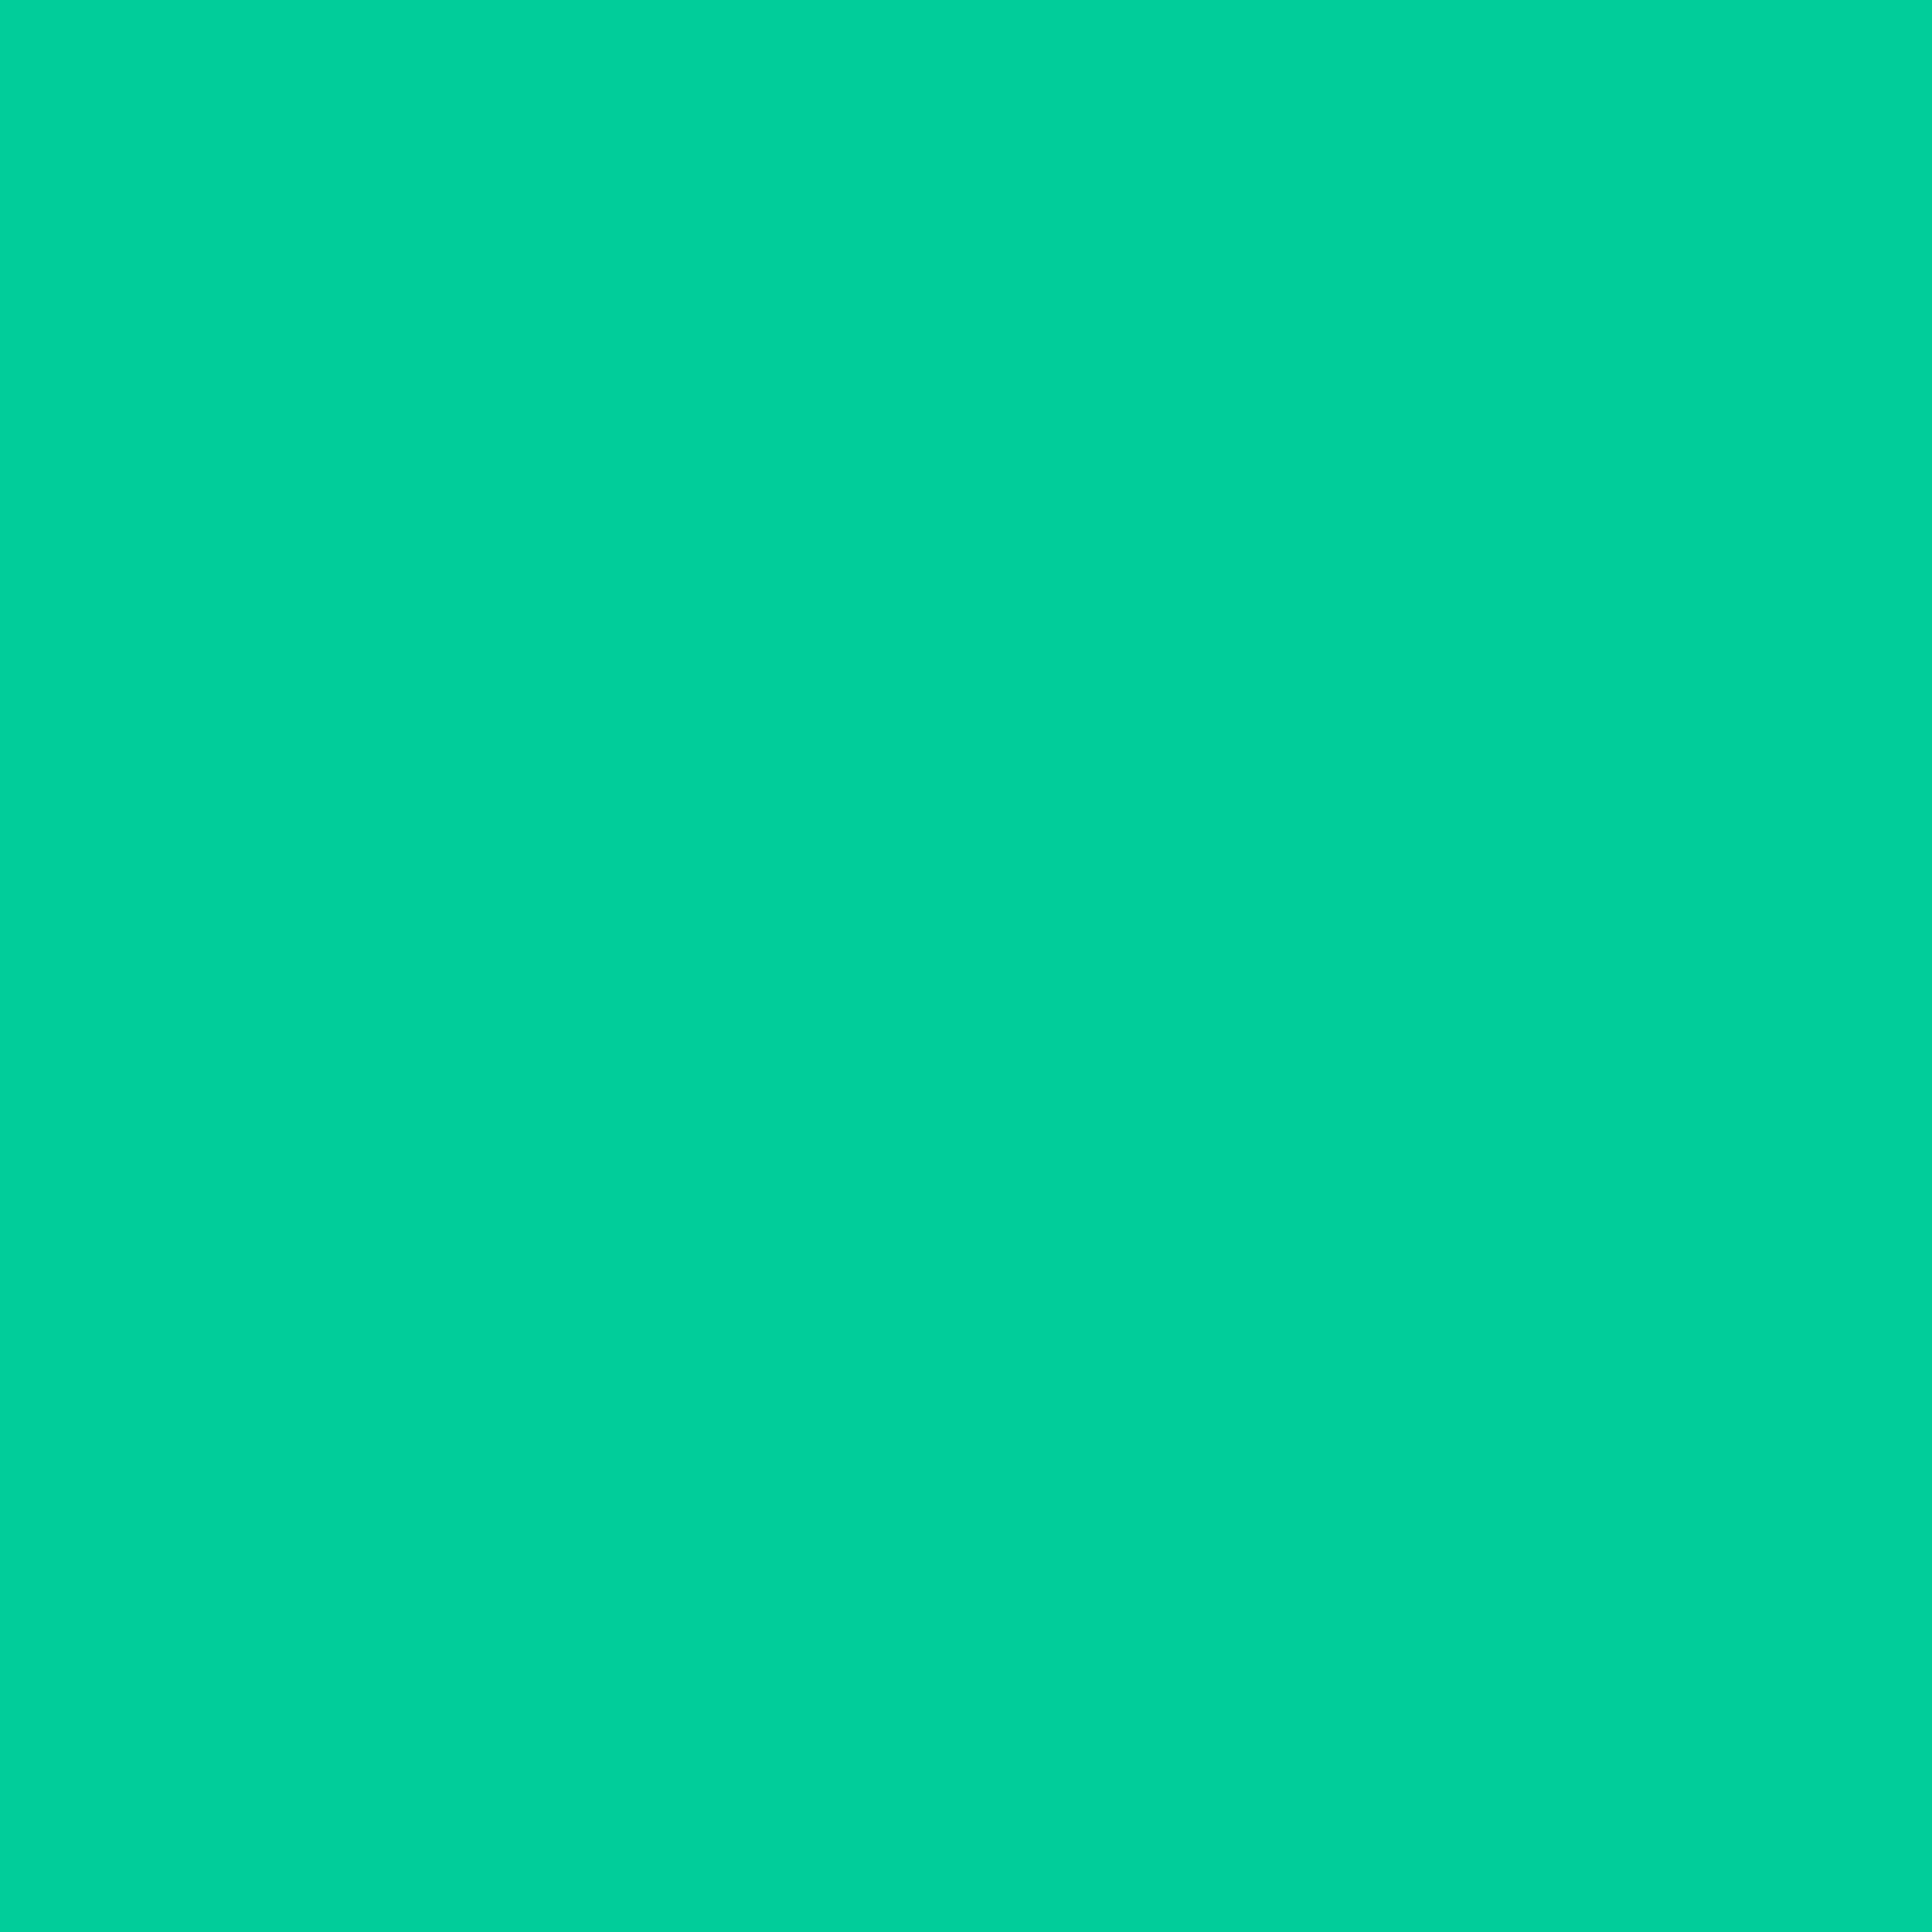 2048x2048 Caribbean Green Solid Color Background